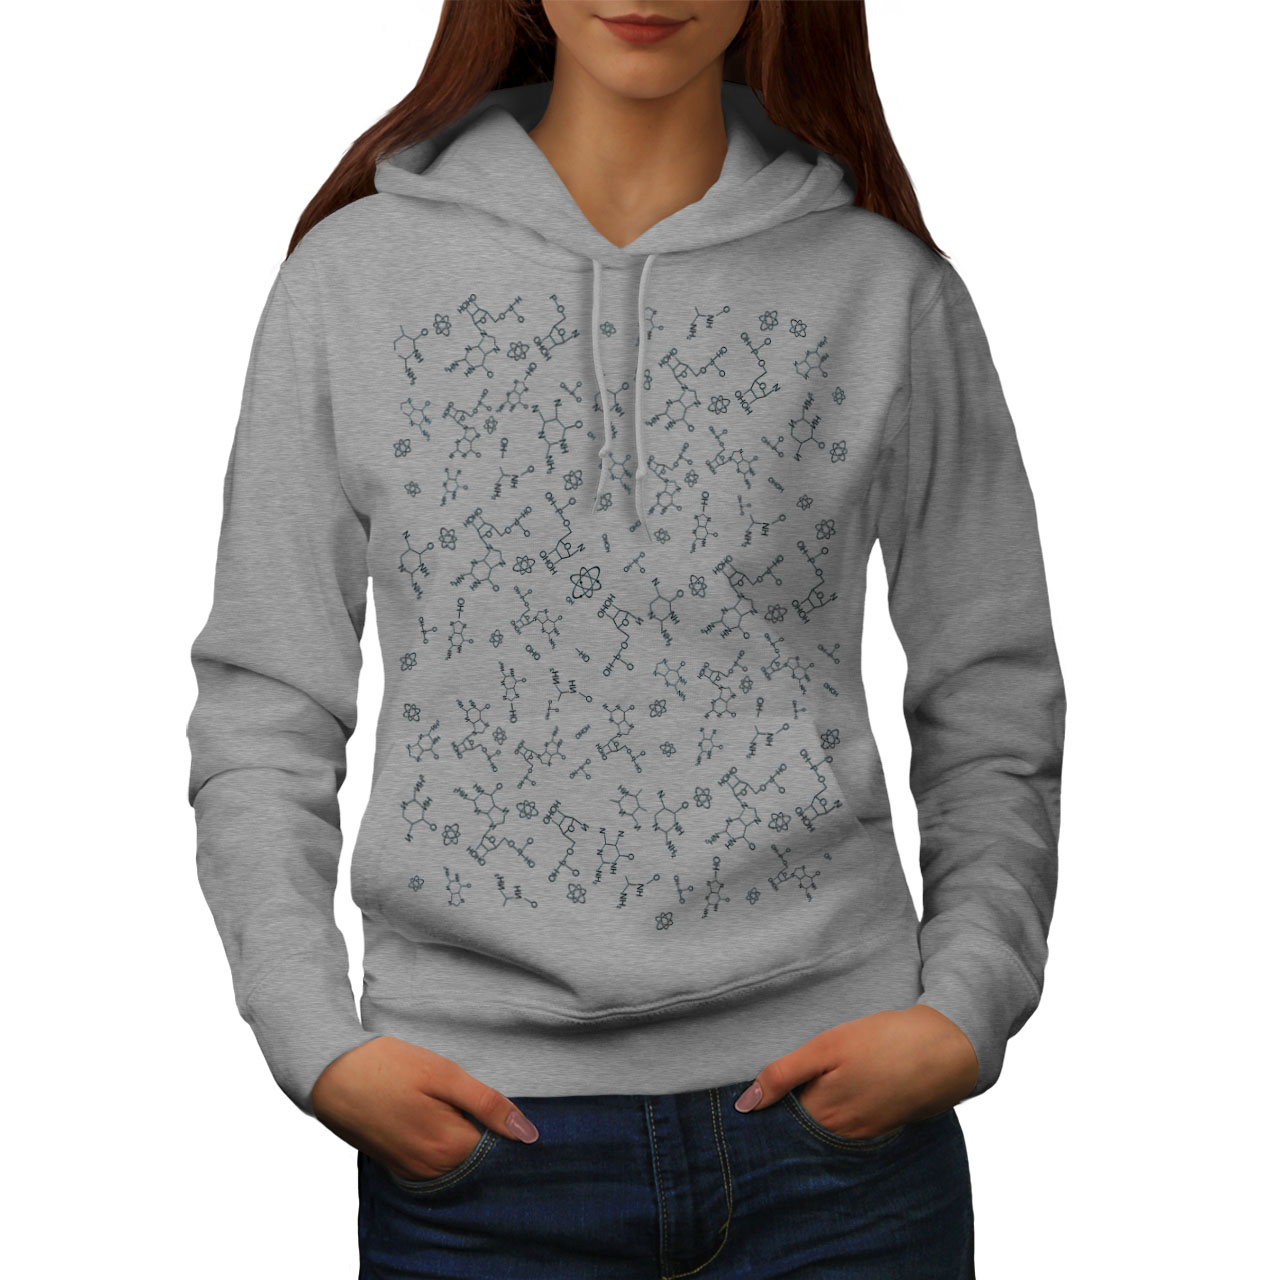 Wellcoda-Chemistry-Science-Geek-Womens-Hoodie-Geek-Casual-Hooded-Sweatshirt thumbnail 7